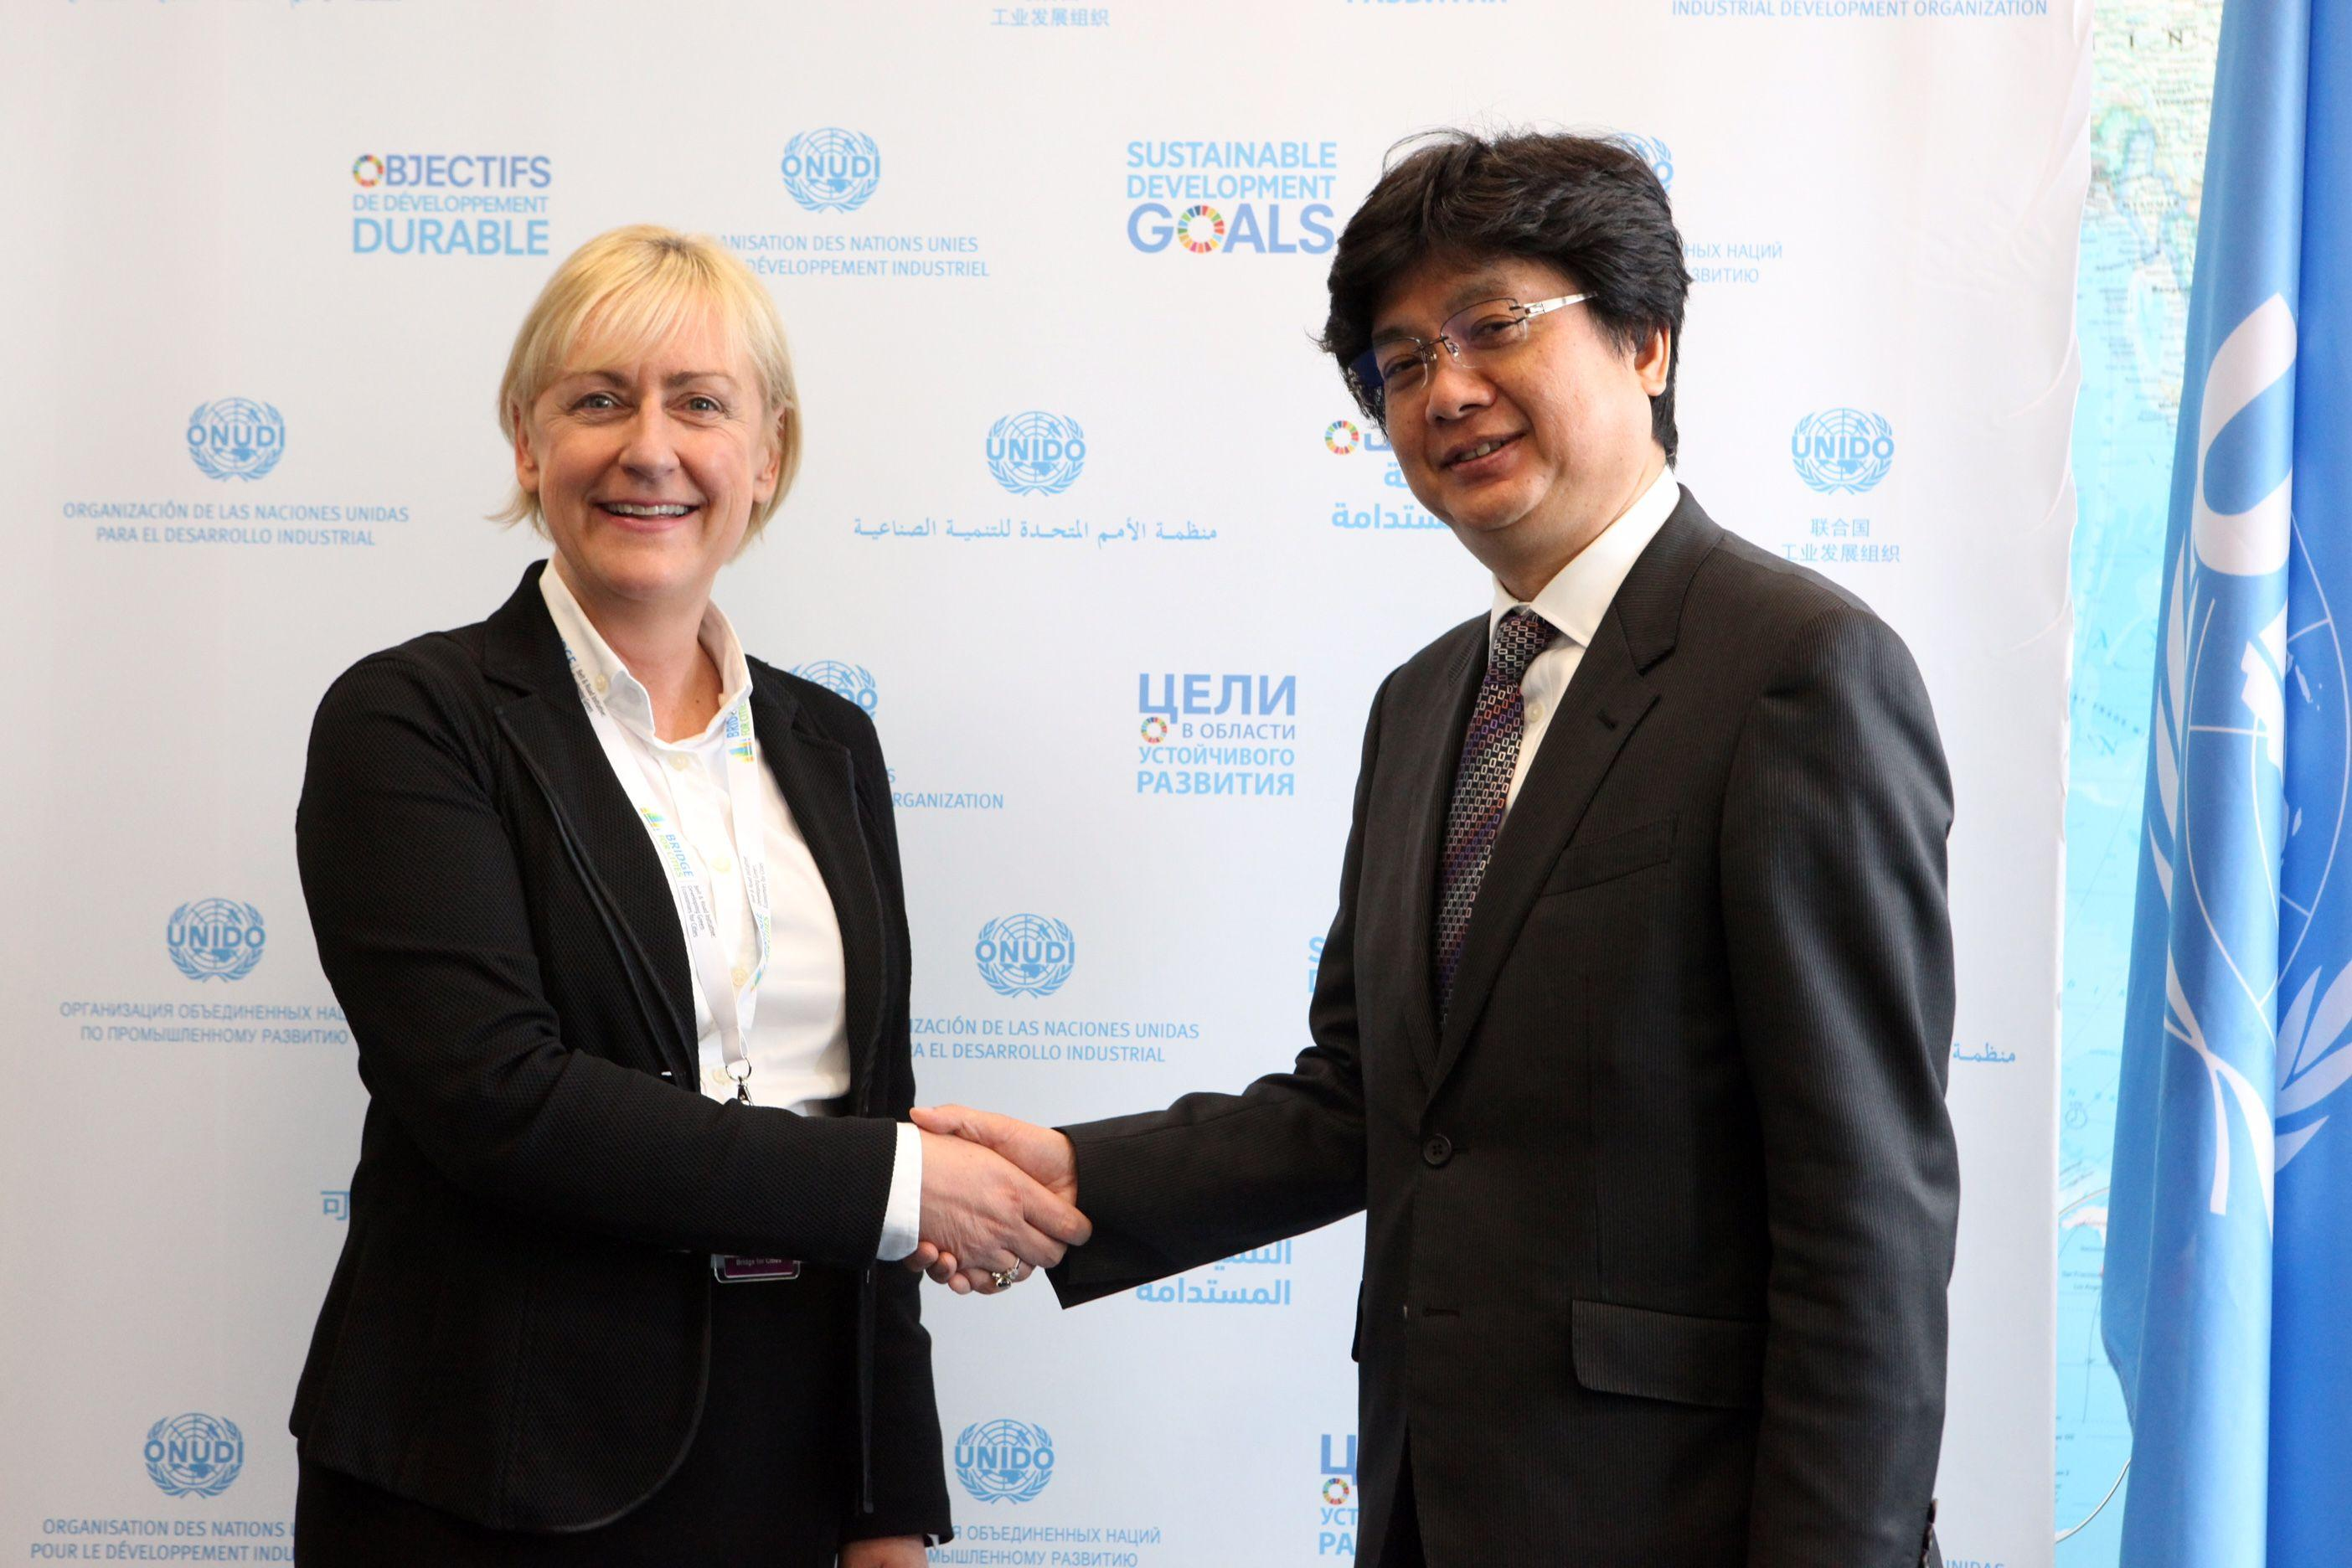 SAP and UNIDO join forces to enable UN Sustainable Development Goals with innovative technologies/gallery